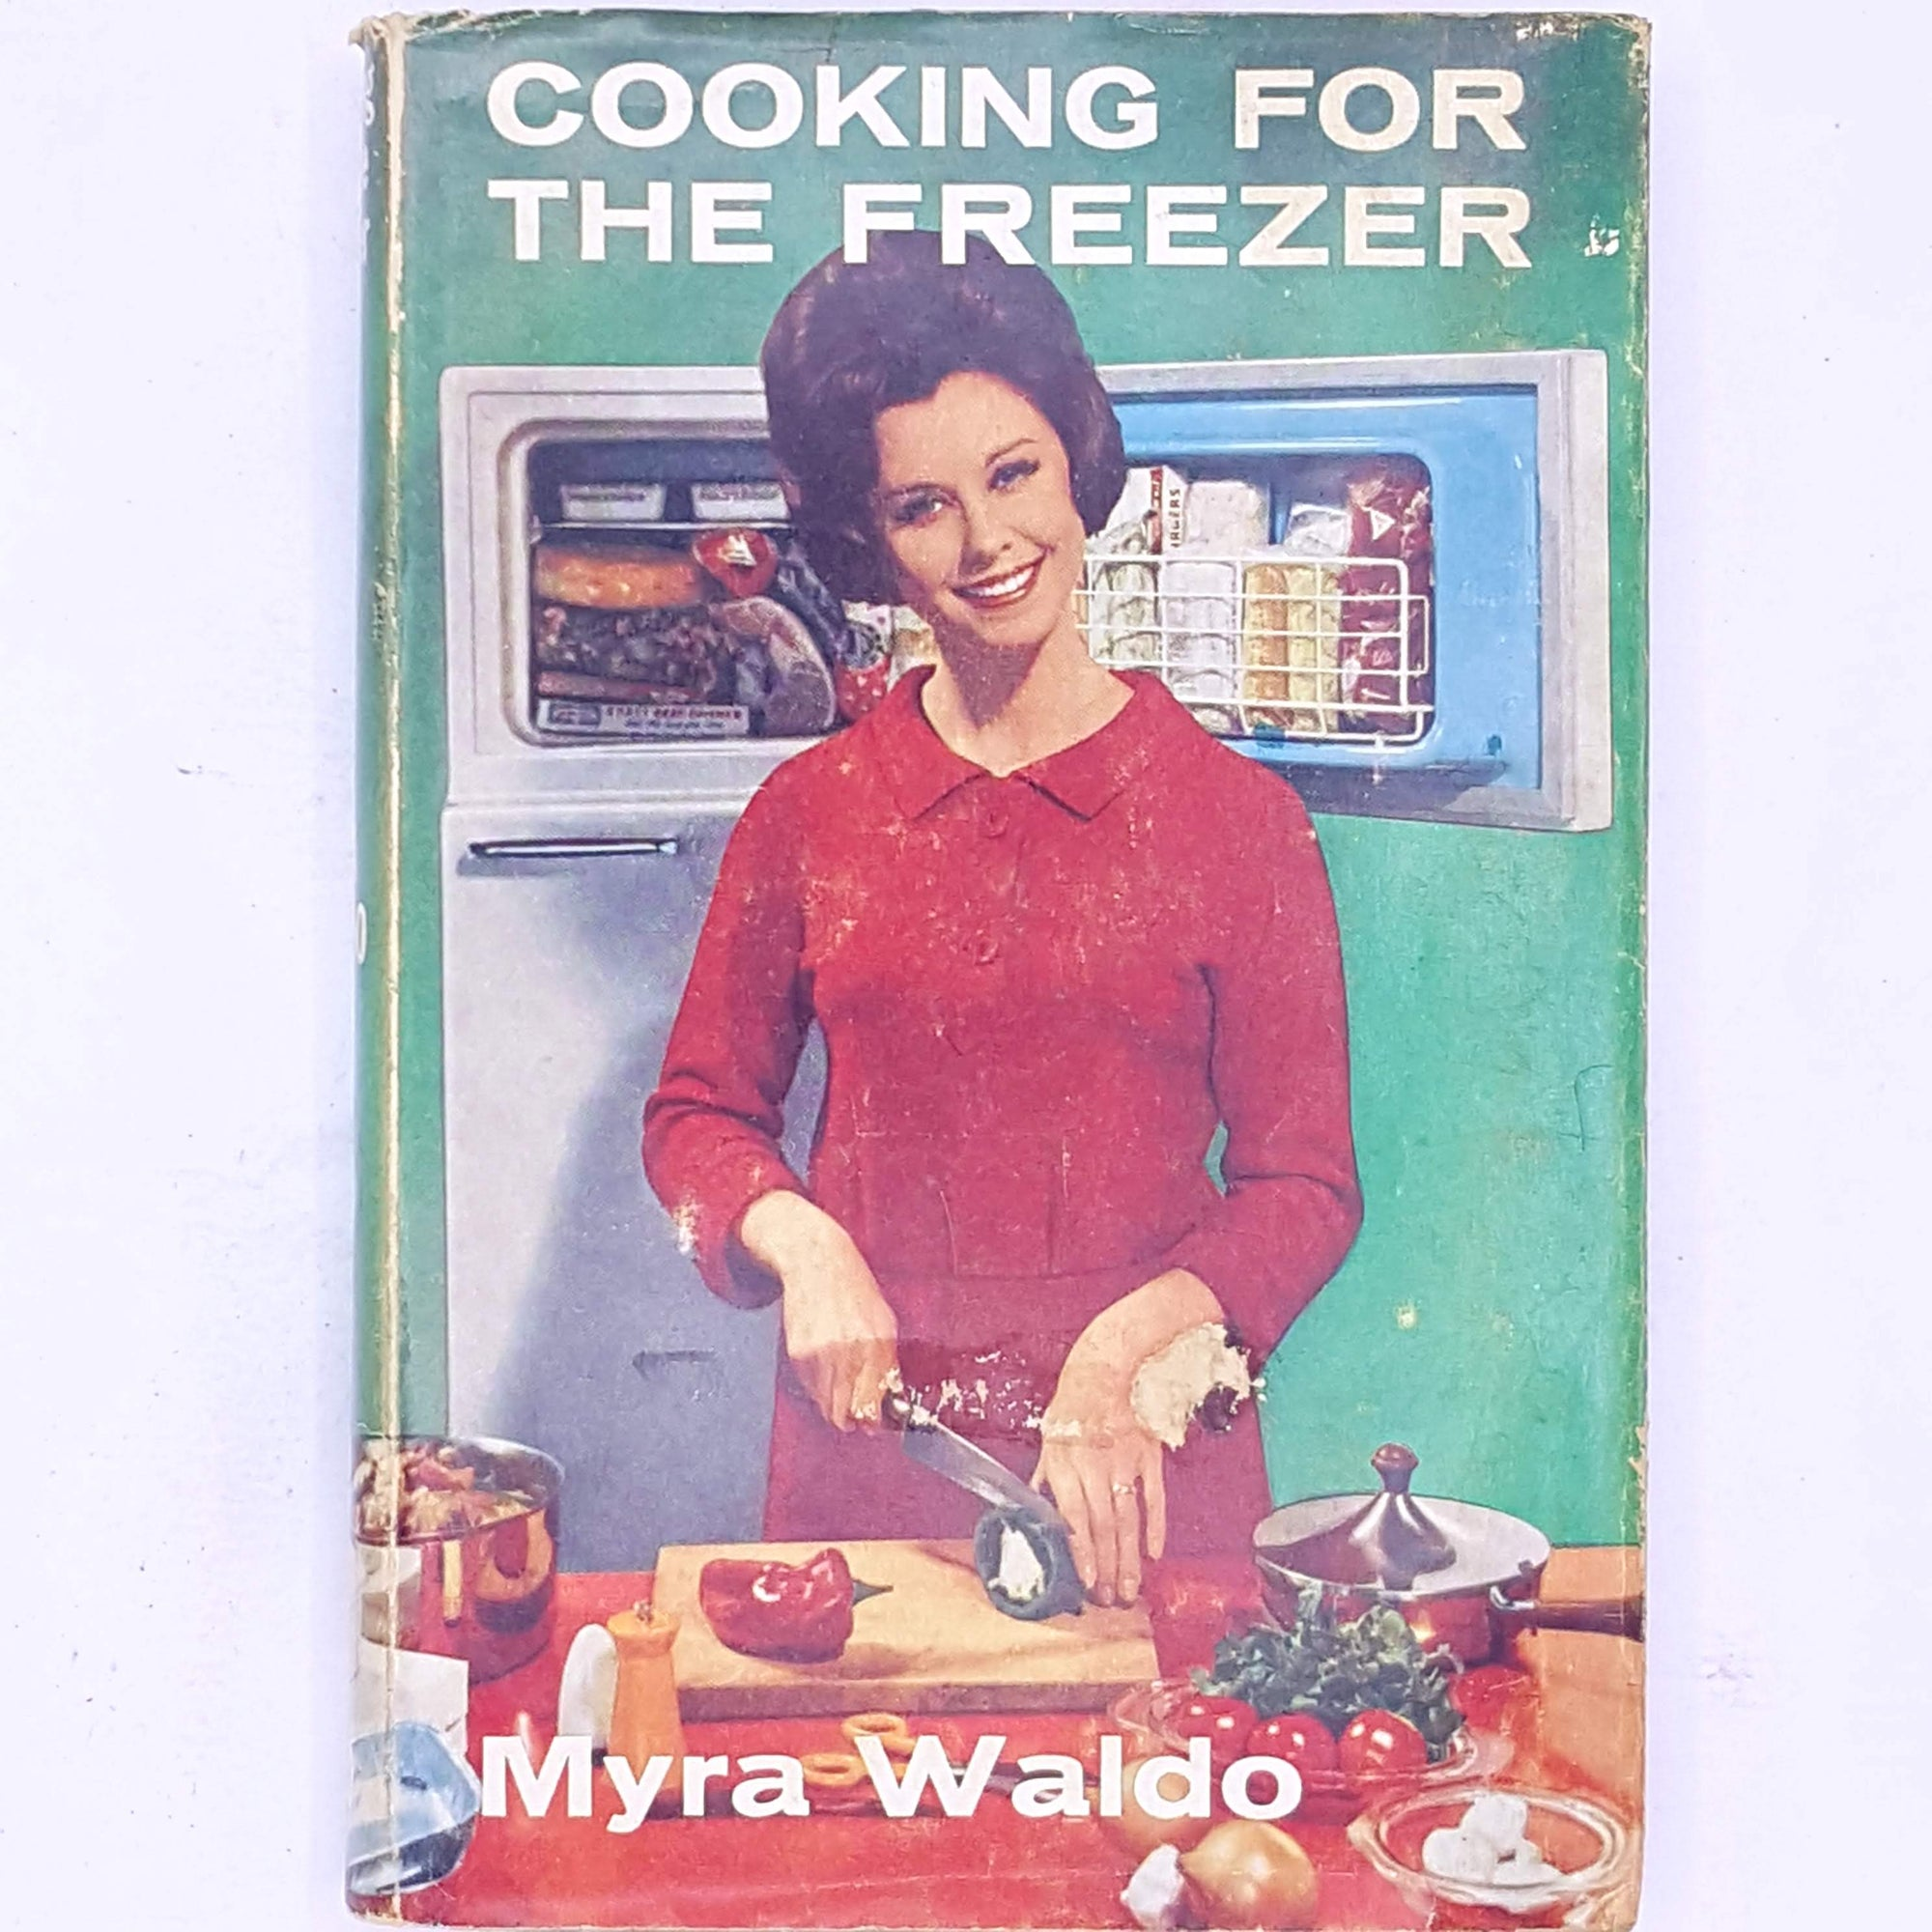 country-house-library-cooking-cookbook-recipes-historical-cooking-myra-waldo-cooking-for-the-freezer-vintage-books-antique-classic-thrift-decorative-patterned-old-